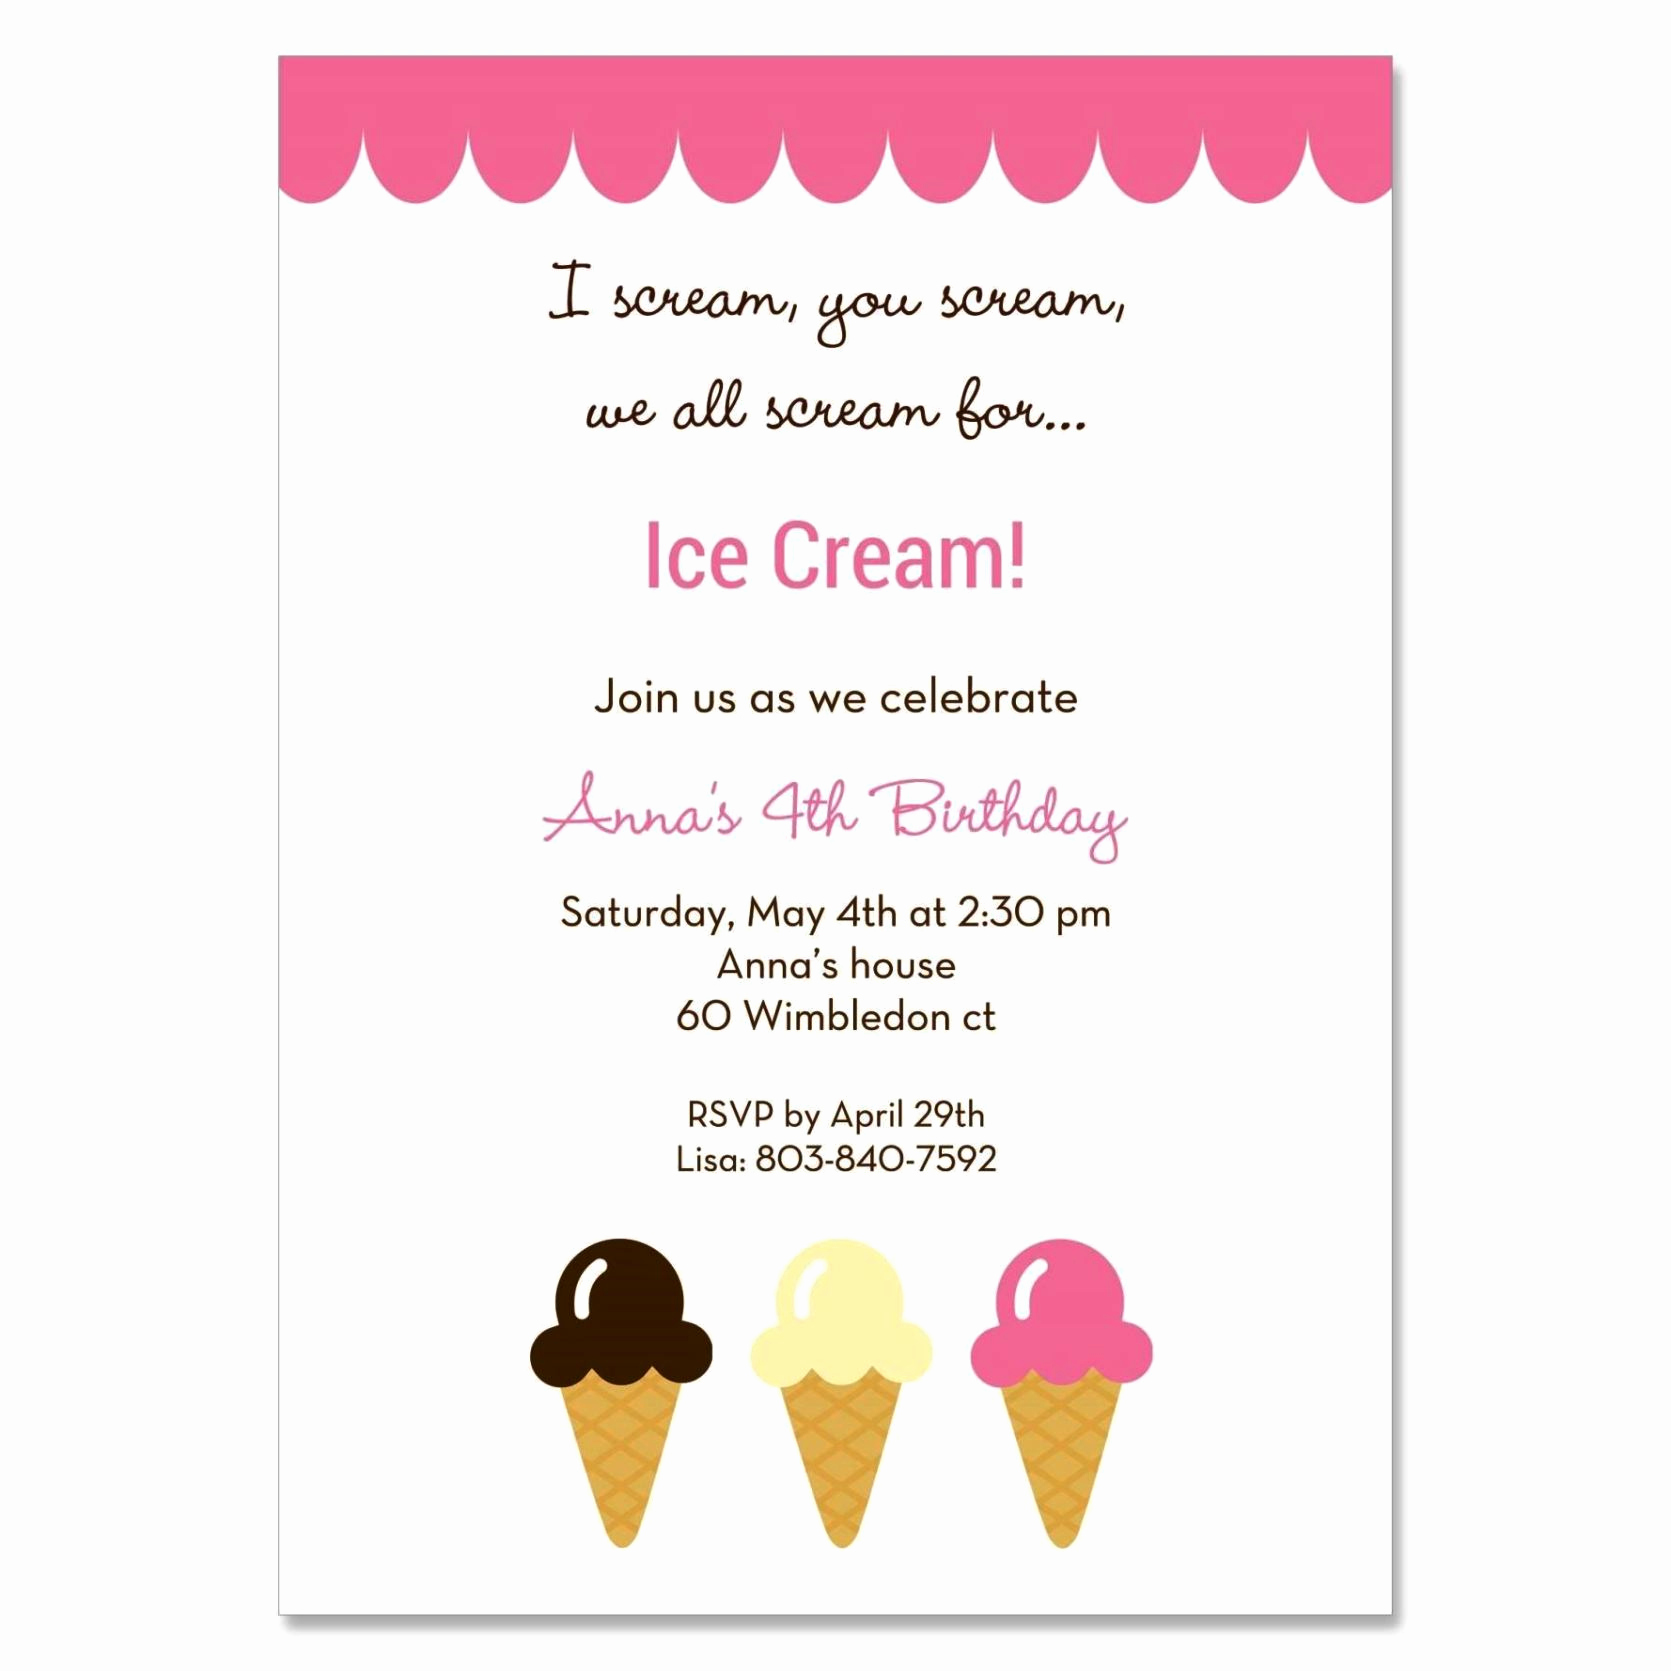 Ice Cream social Invitation Template Beautiful Ice Cream social Invitation Template Sampletemplatess